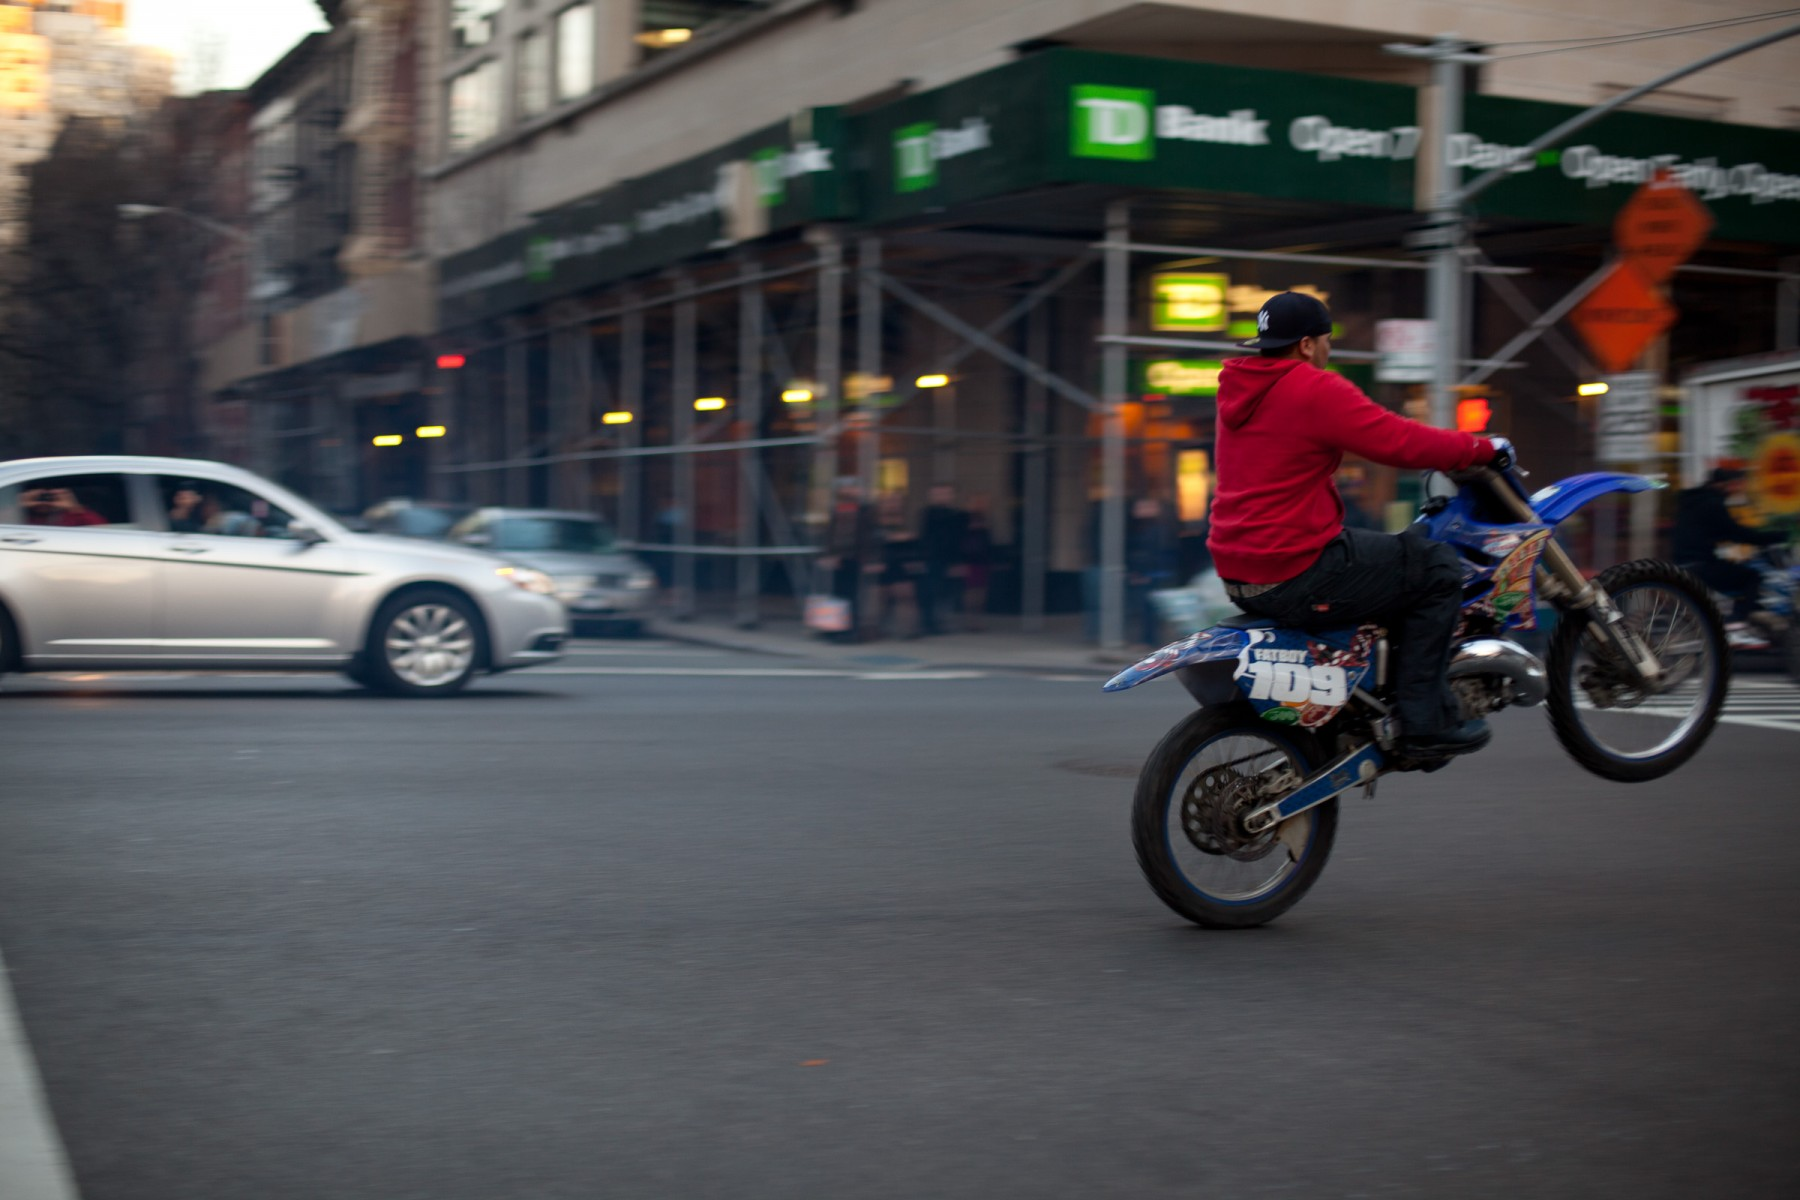 Caught the tail end of a group of motorcyclists hooning through the fancy section of New York. There were cruisers, sports bikes, motorcross and quads in the group so, apparently, the only rule for joining the gang was that you had to have a bike of some sort.